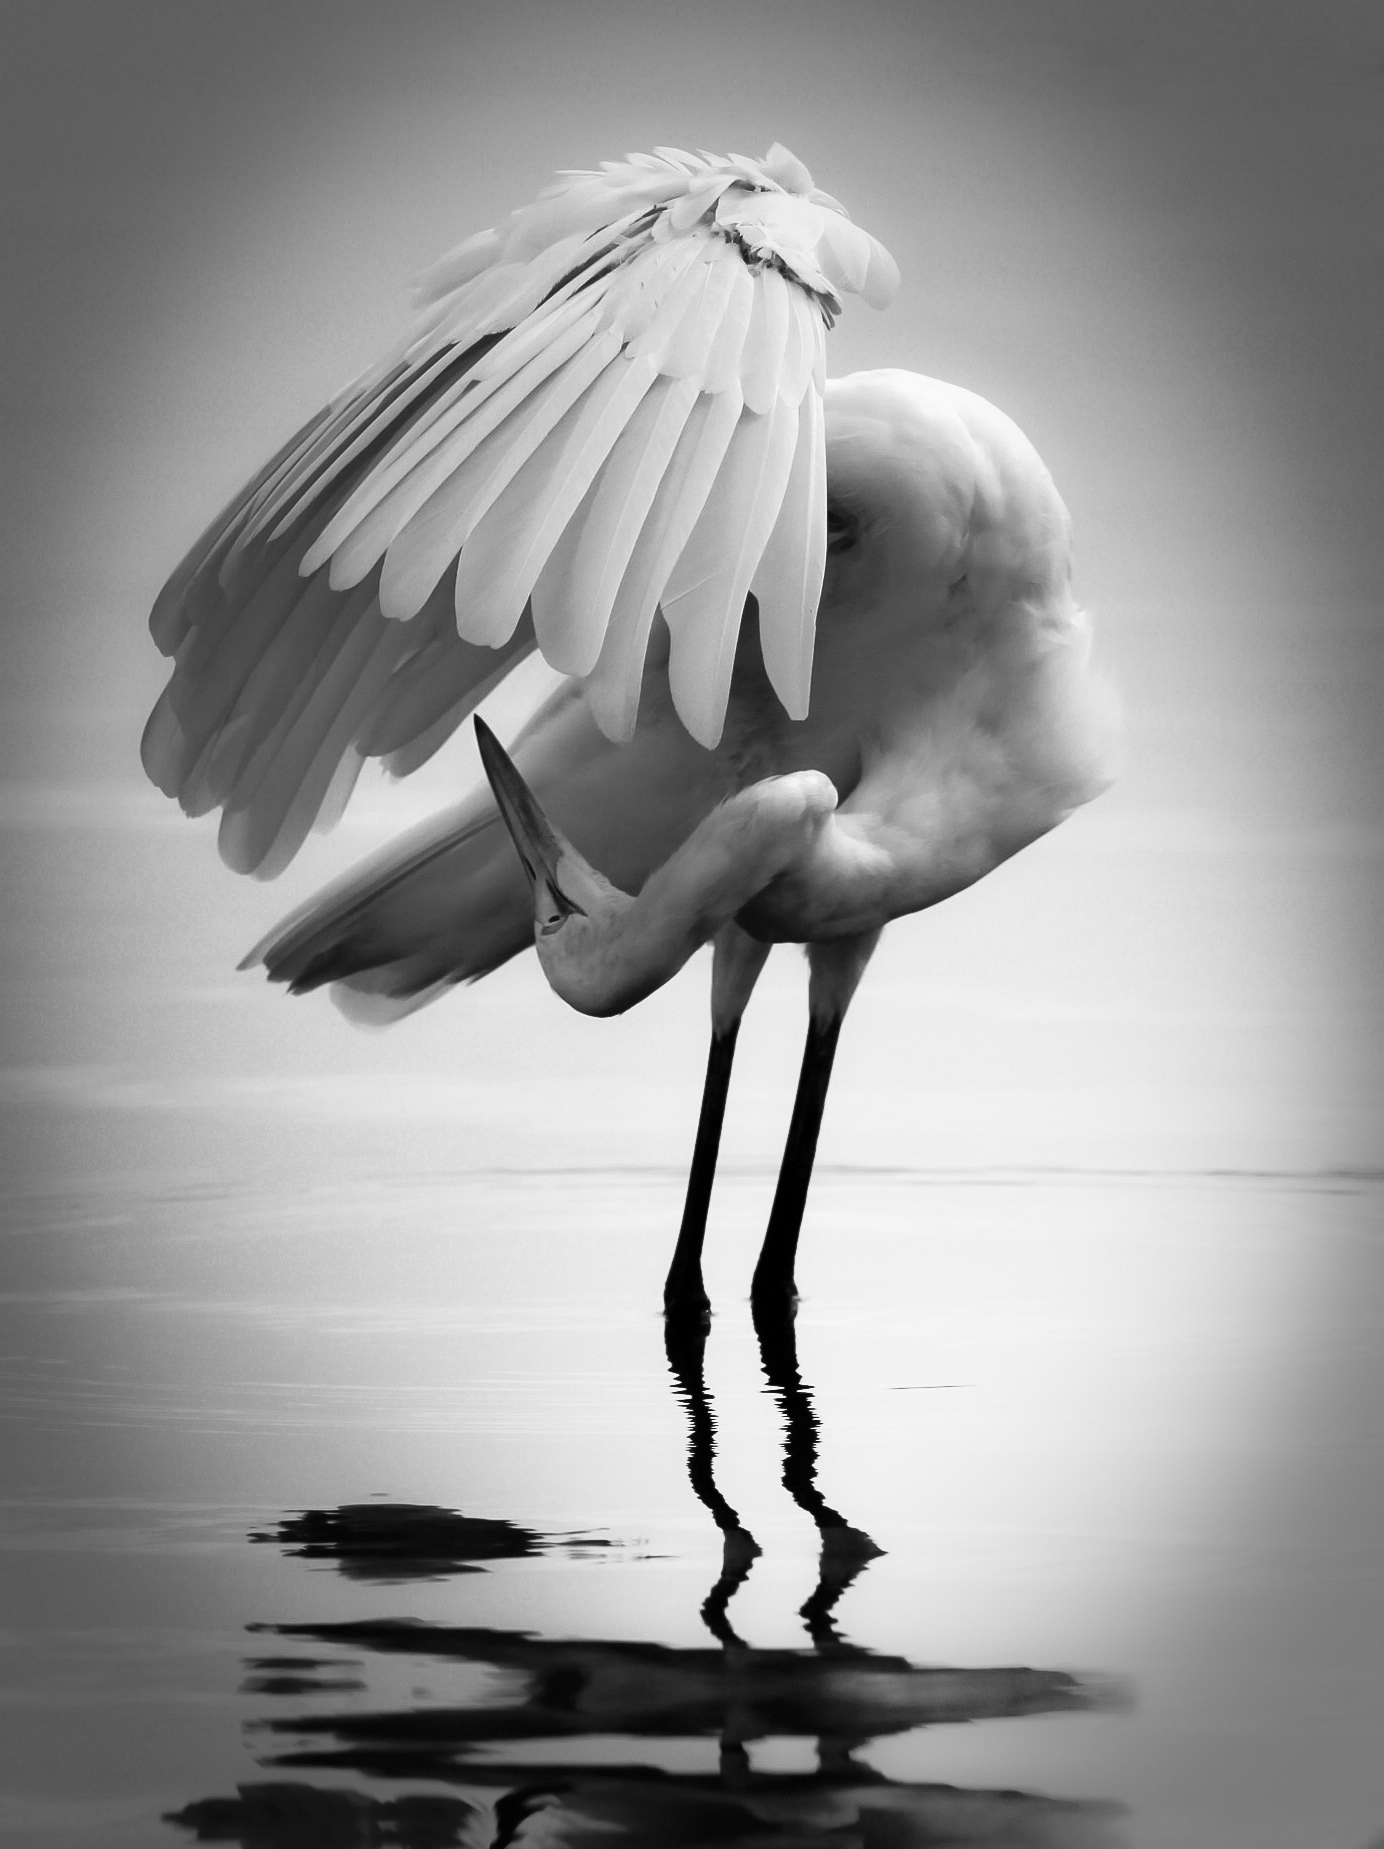 Craigoneal files wordpress com 2013 06 egret bw refinished jpg · an award winning black and white photo due colleghi